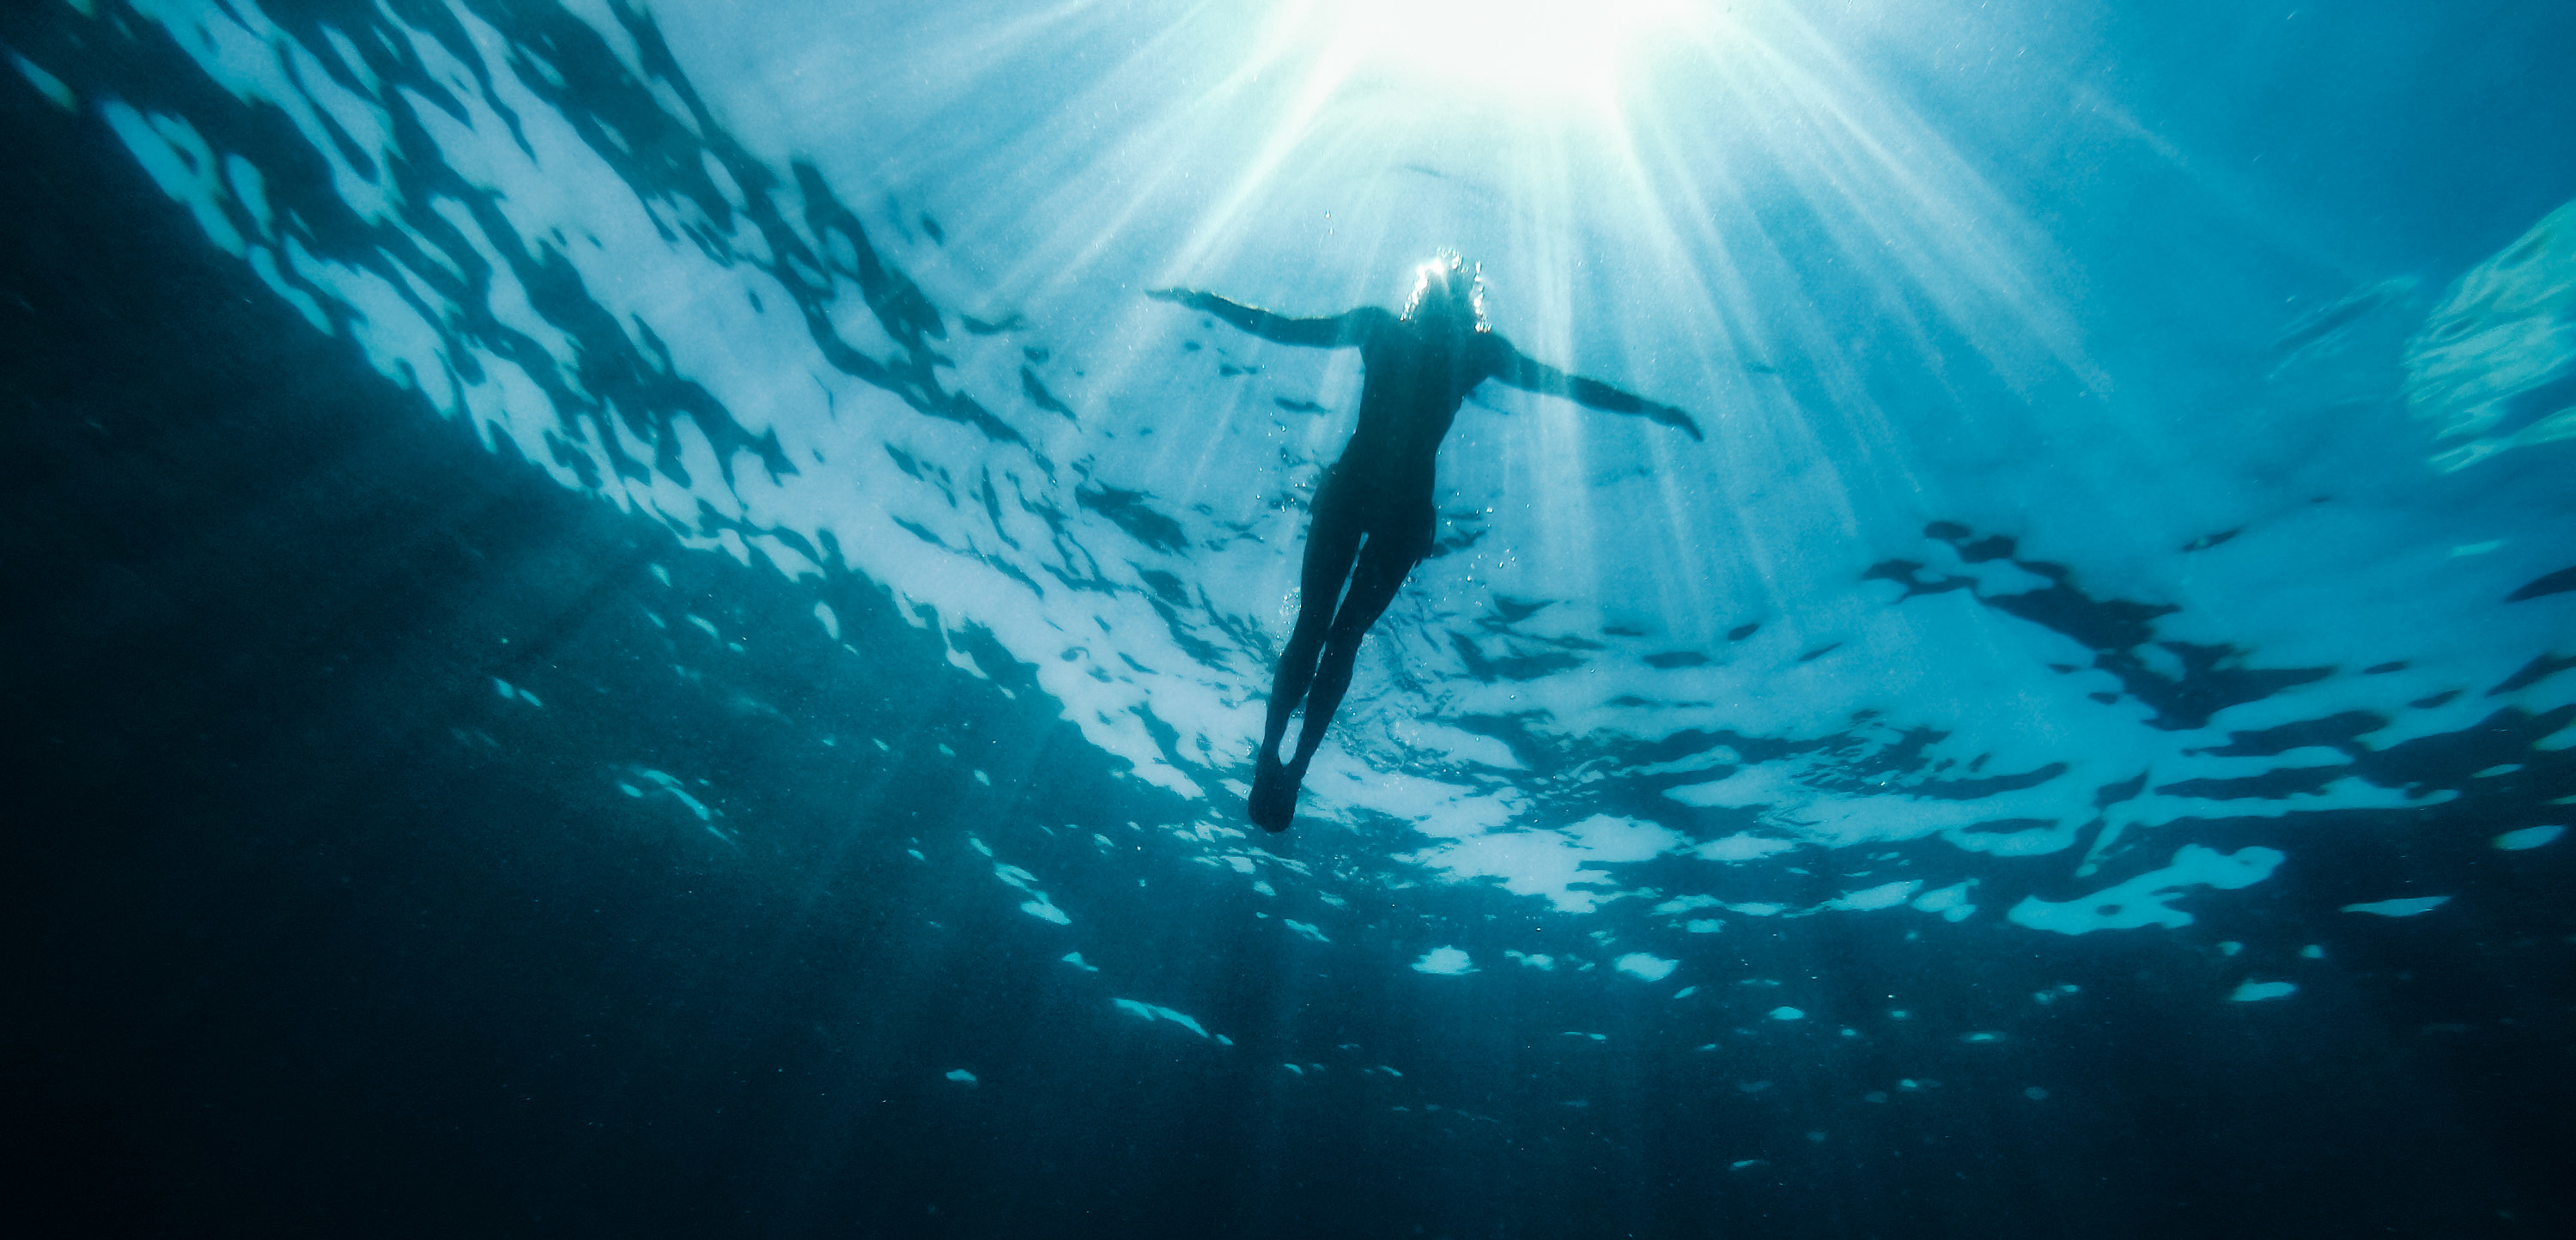 Underwater photo of woman floating in the sea and rays of light piercing through